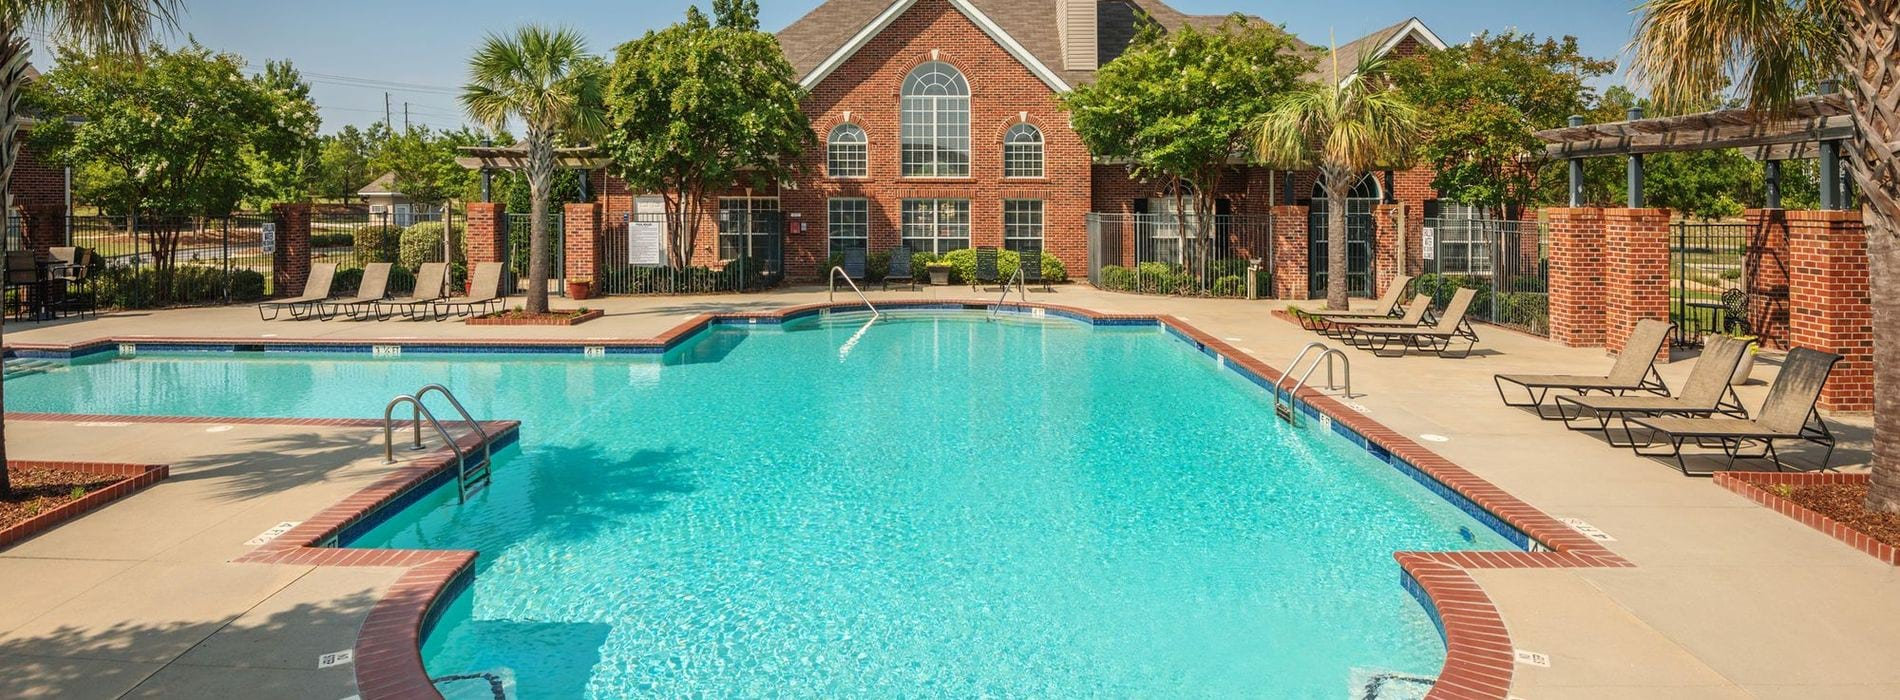 Apartments for Rent in Elgin, SC | Woodcreek Farms - Home